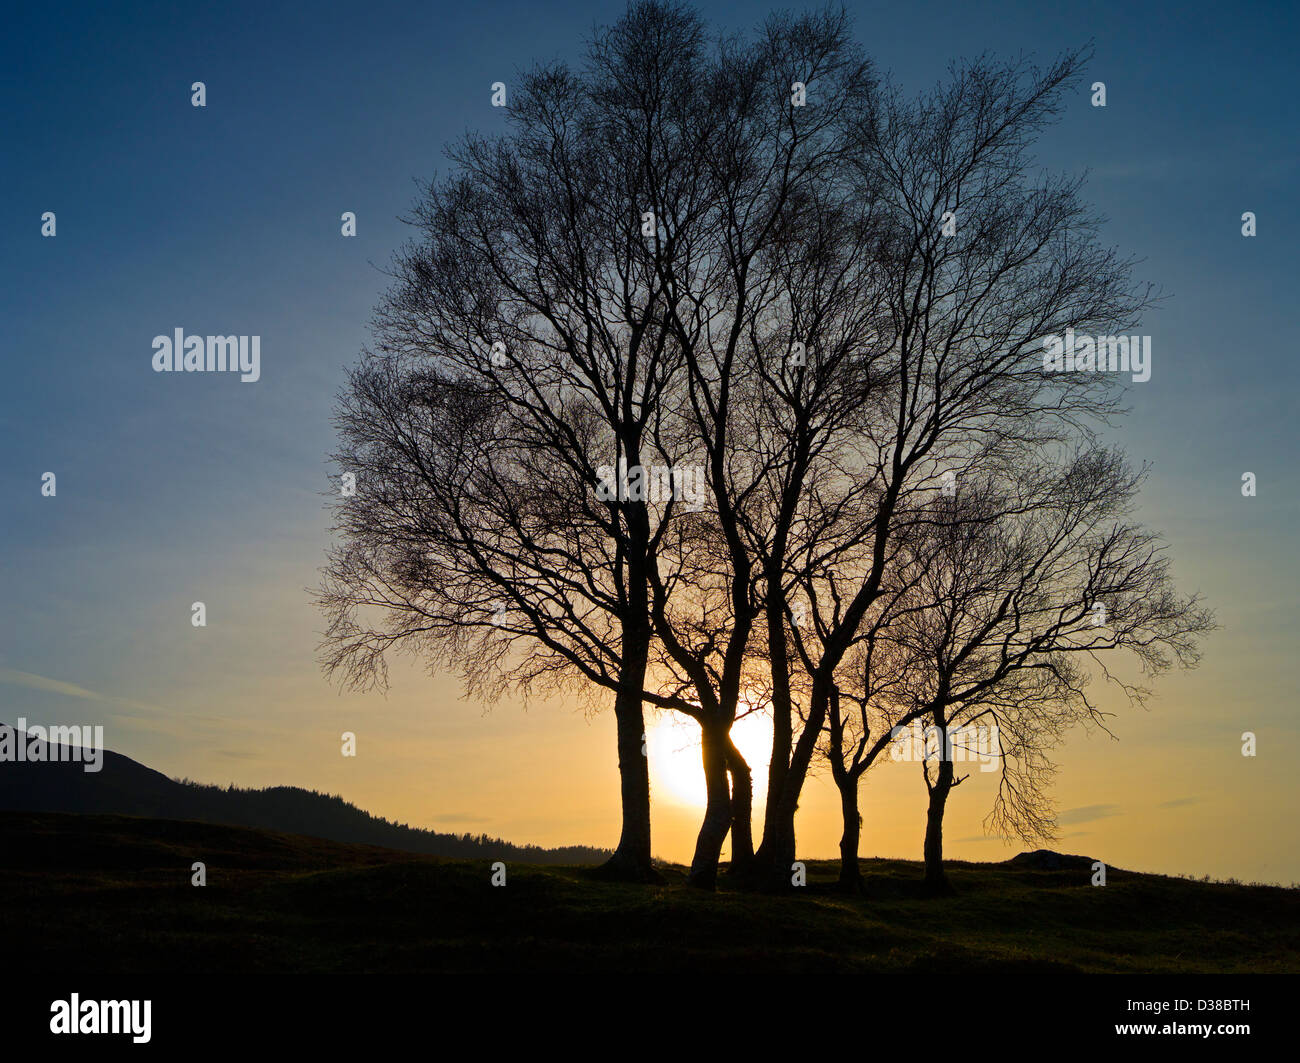 Group of birch-trees in bare winter condition above Strath Tummel, Scottish Highlands - Stock Image